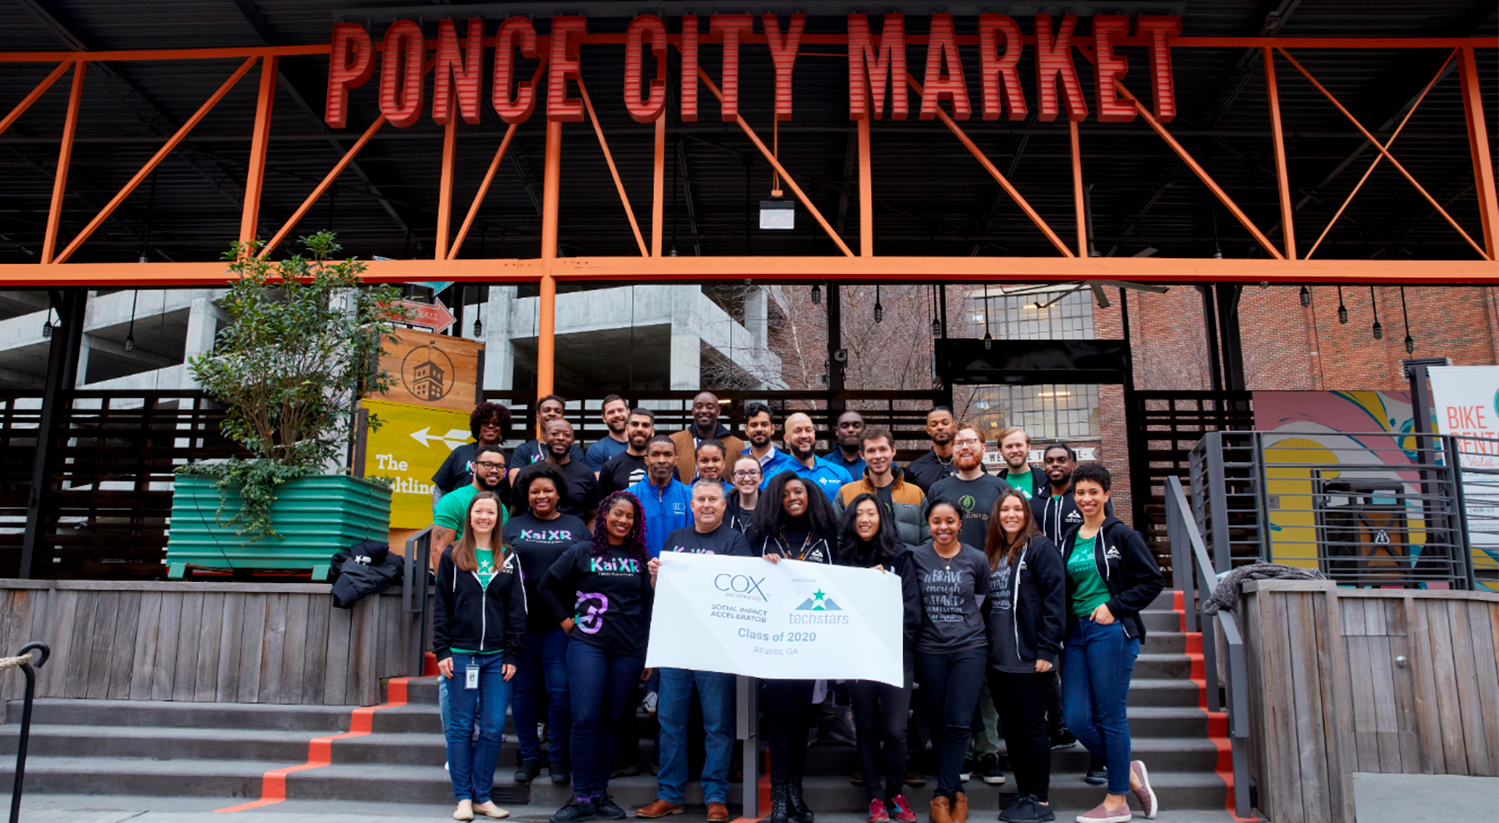 TechStars group photo in front of Ponce City Market